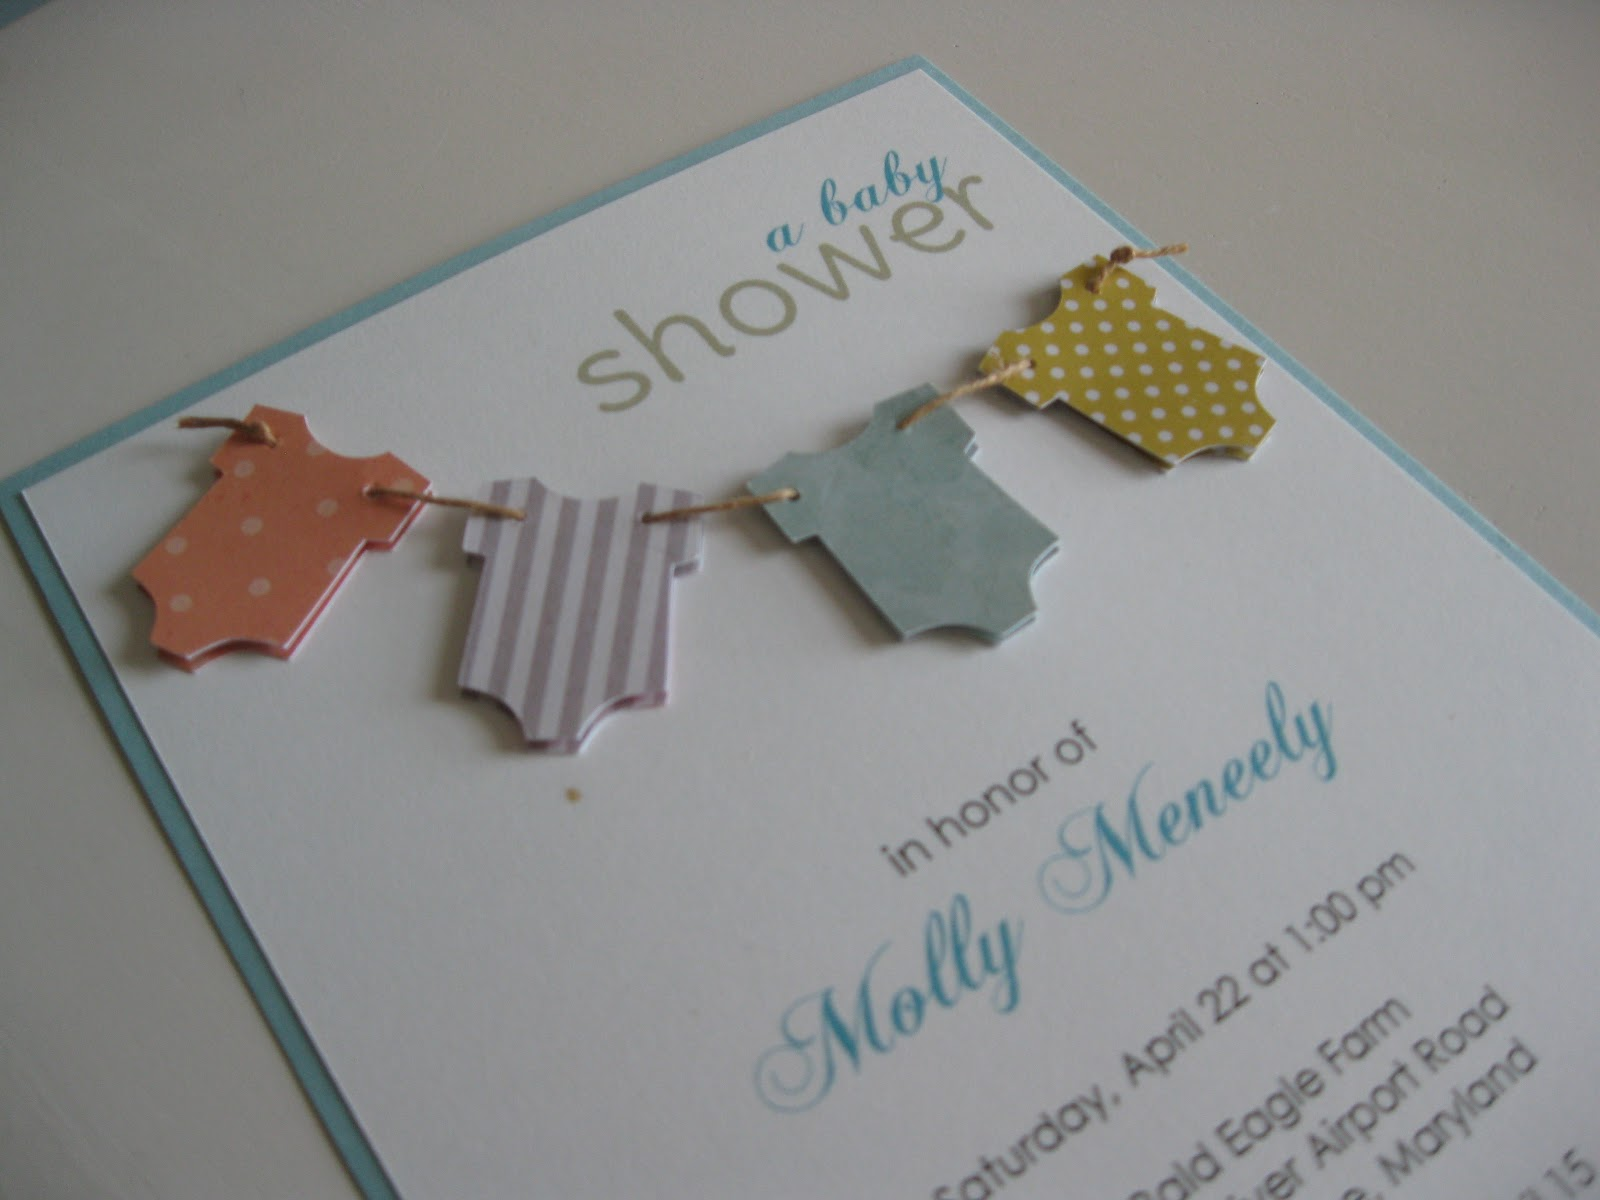 Baby shower invitations my bucket list of crafts recipes and instead i made one with paper see baby shower decorations post and carried her idea to the invitation solutioingenieria Choice Image